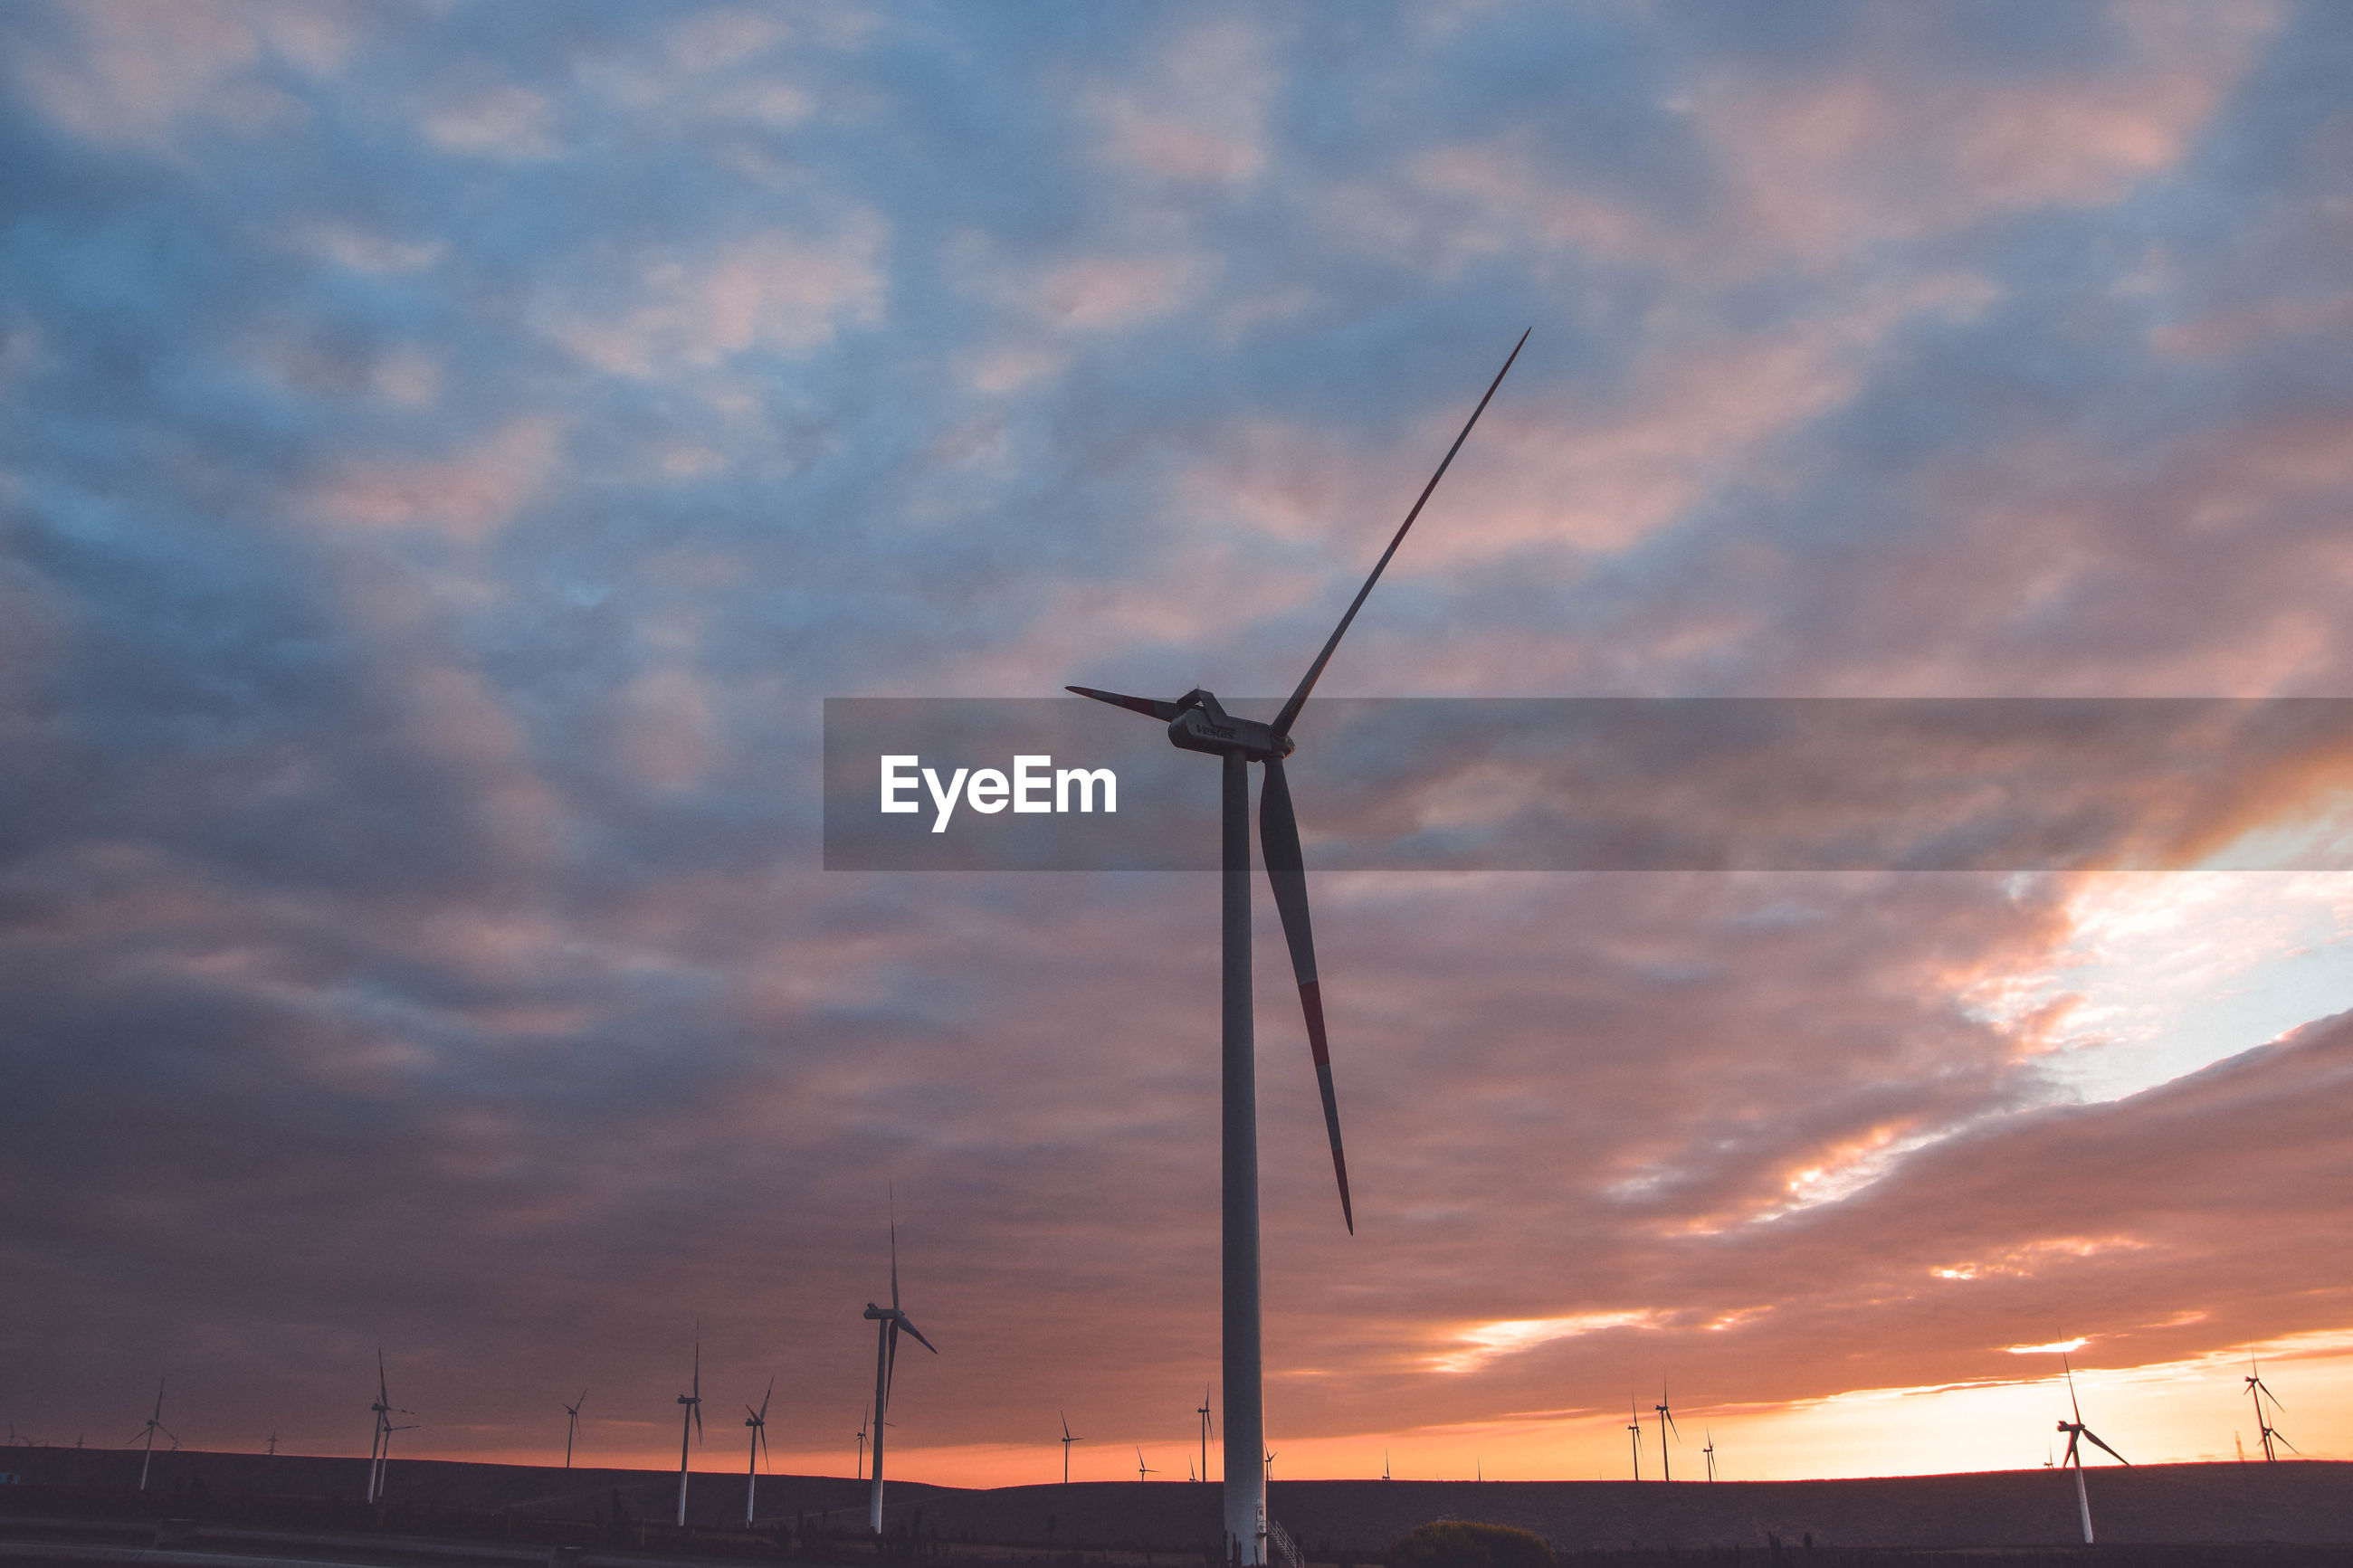 Low angle view of silhouette wind turbine against sky during sunset